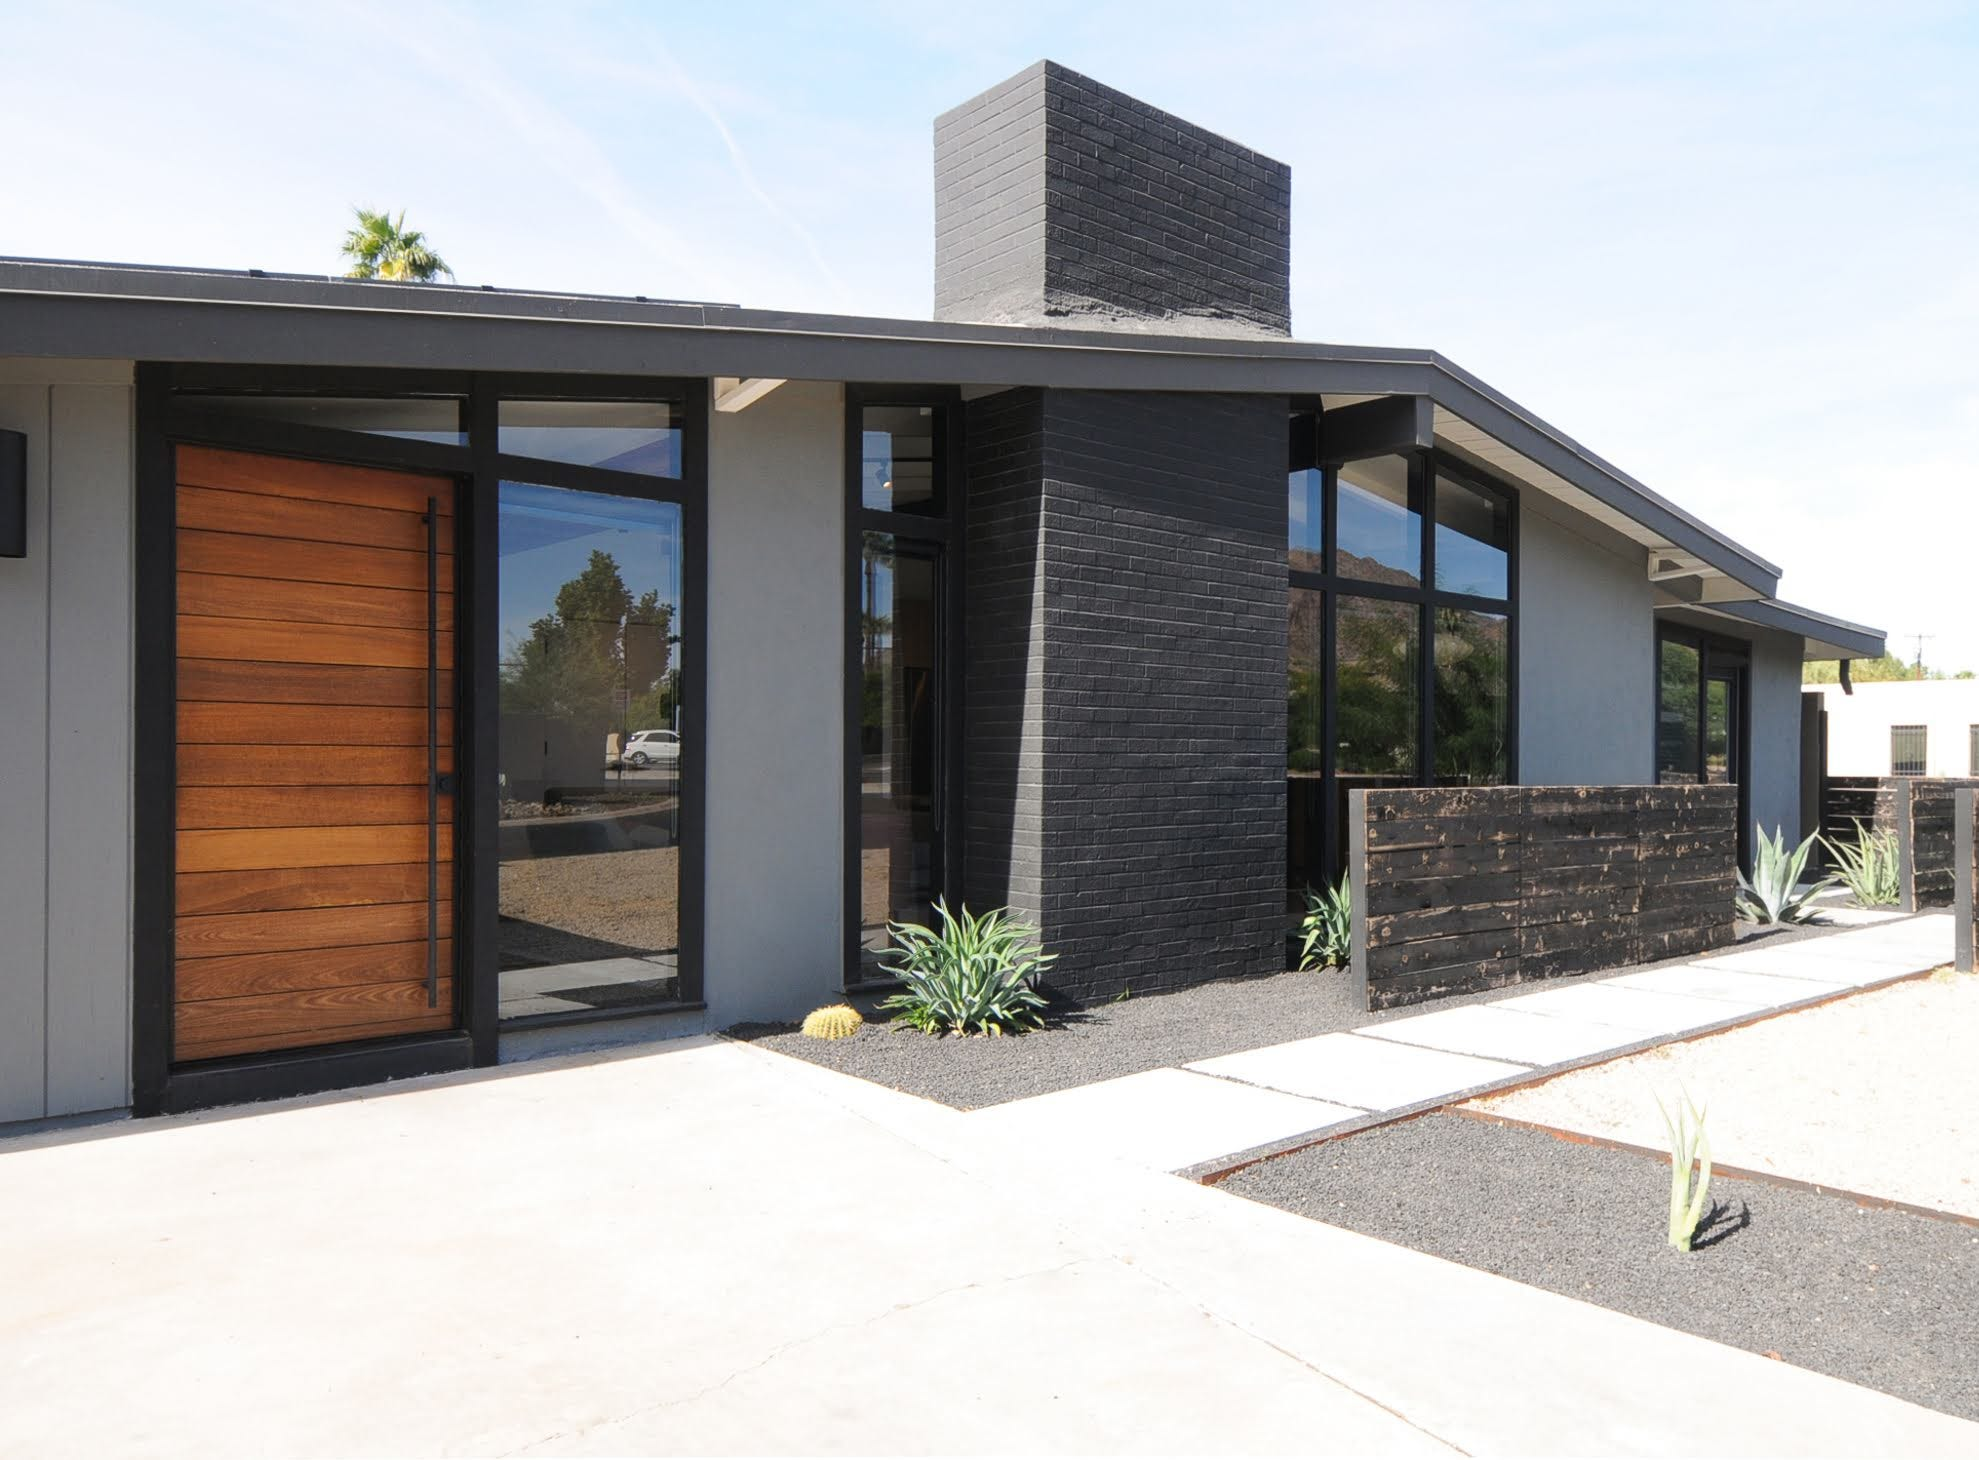 Black steel trim, an oversized front door and rustic wood show visitors what they may expect once inside the Arcadia-area Haver home.